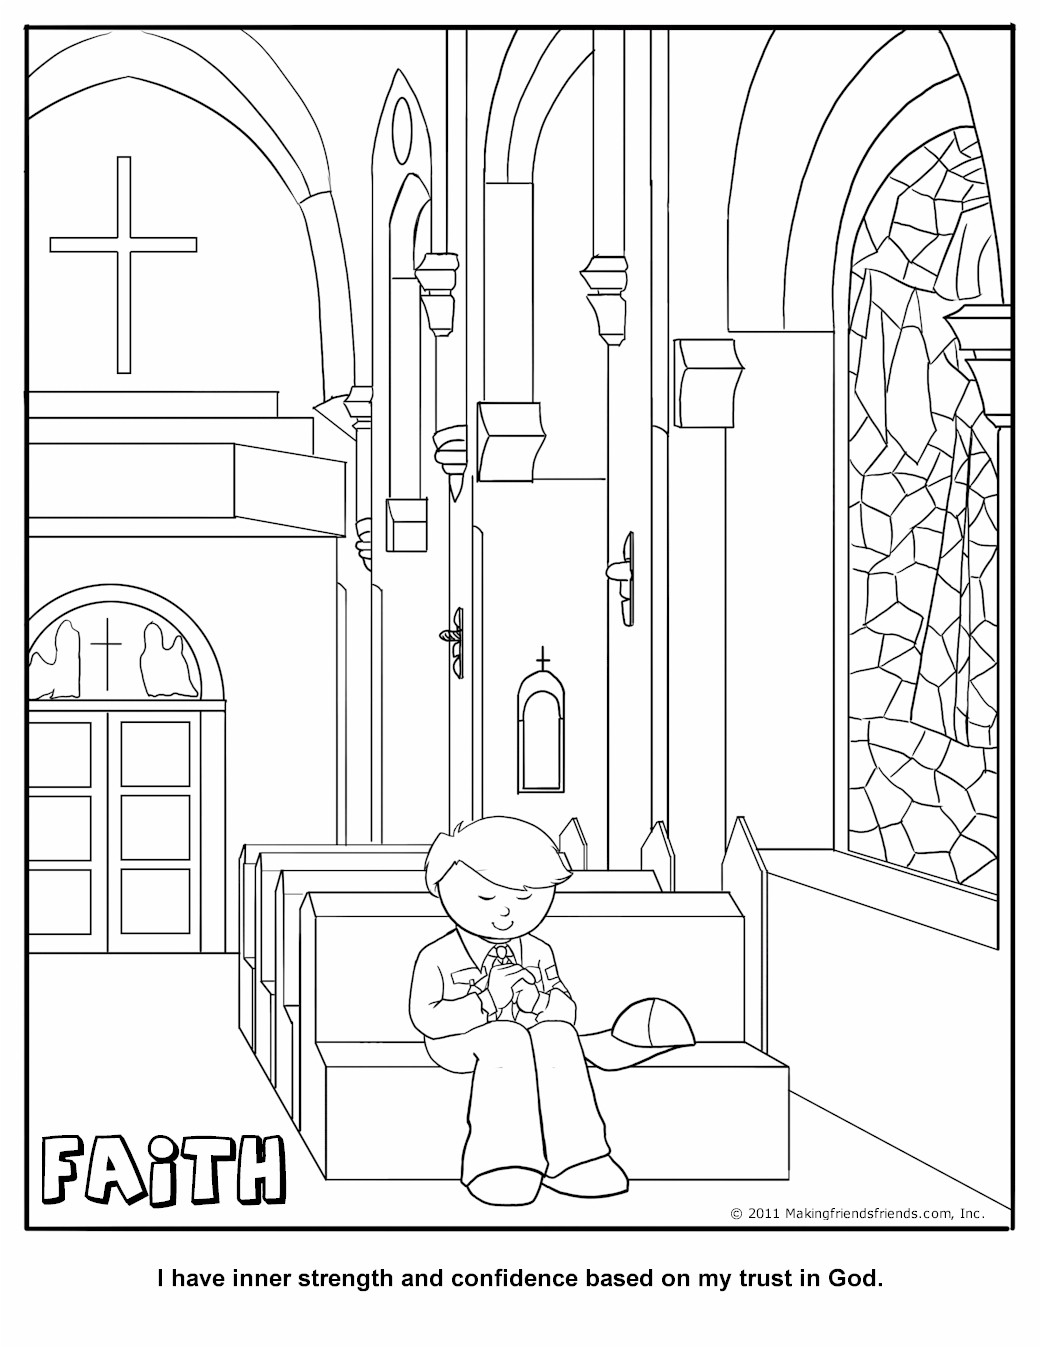 Cub Scout Faith Coloring Page